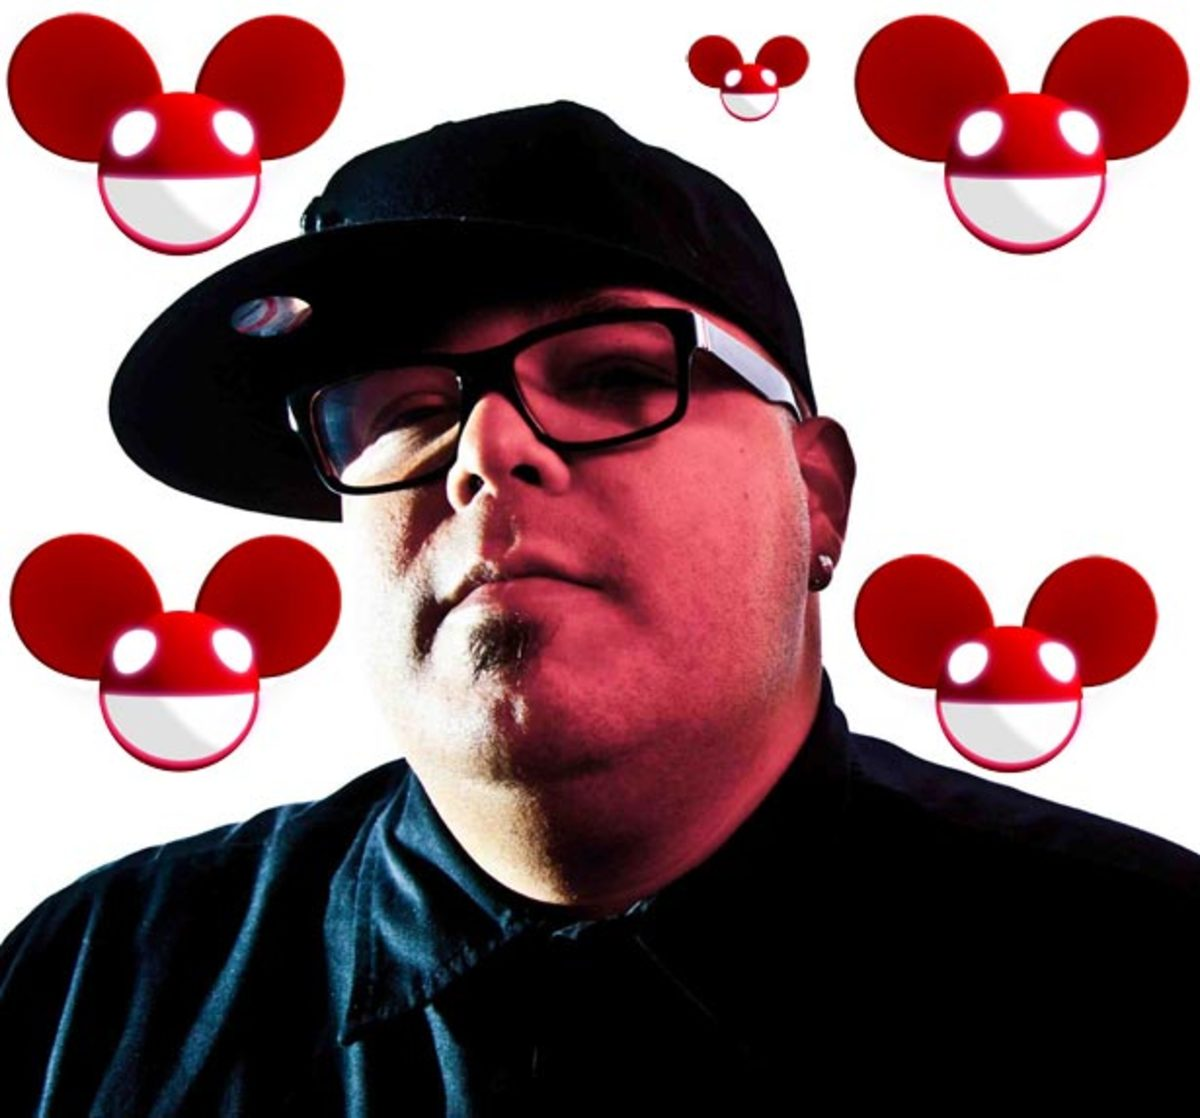 Twitt Talk: deadmau5 vs. DJ Sneak—Ding Ding